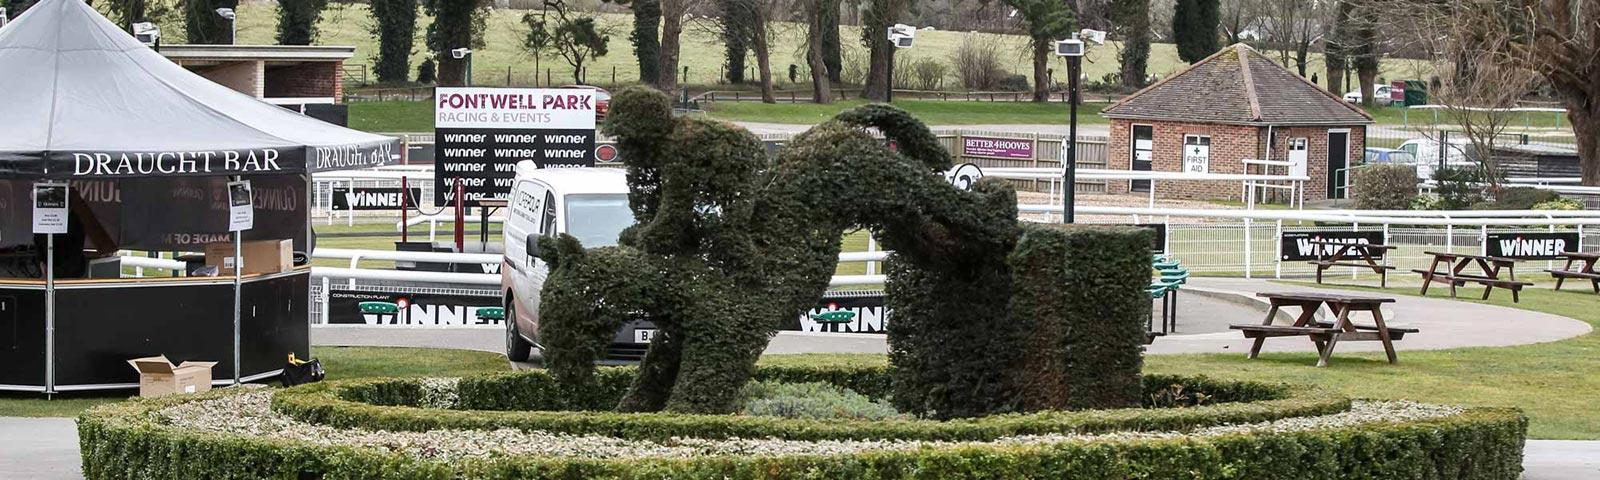 A view of some of the outdoor attractions at Fontwell Park Racecourse.